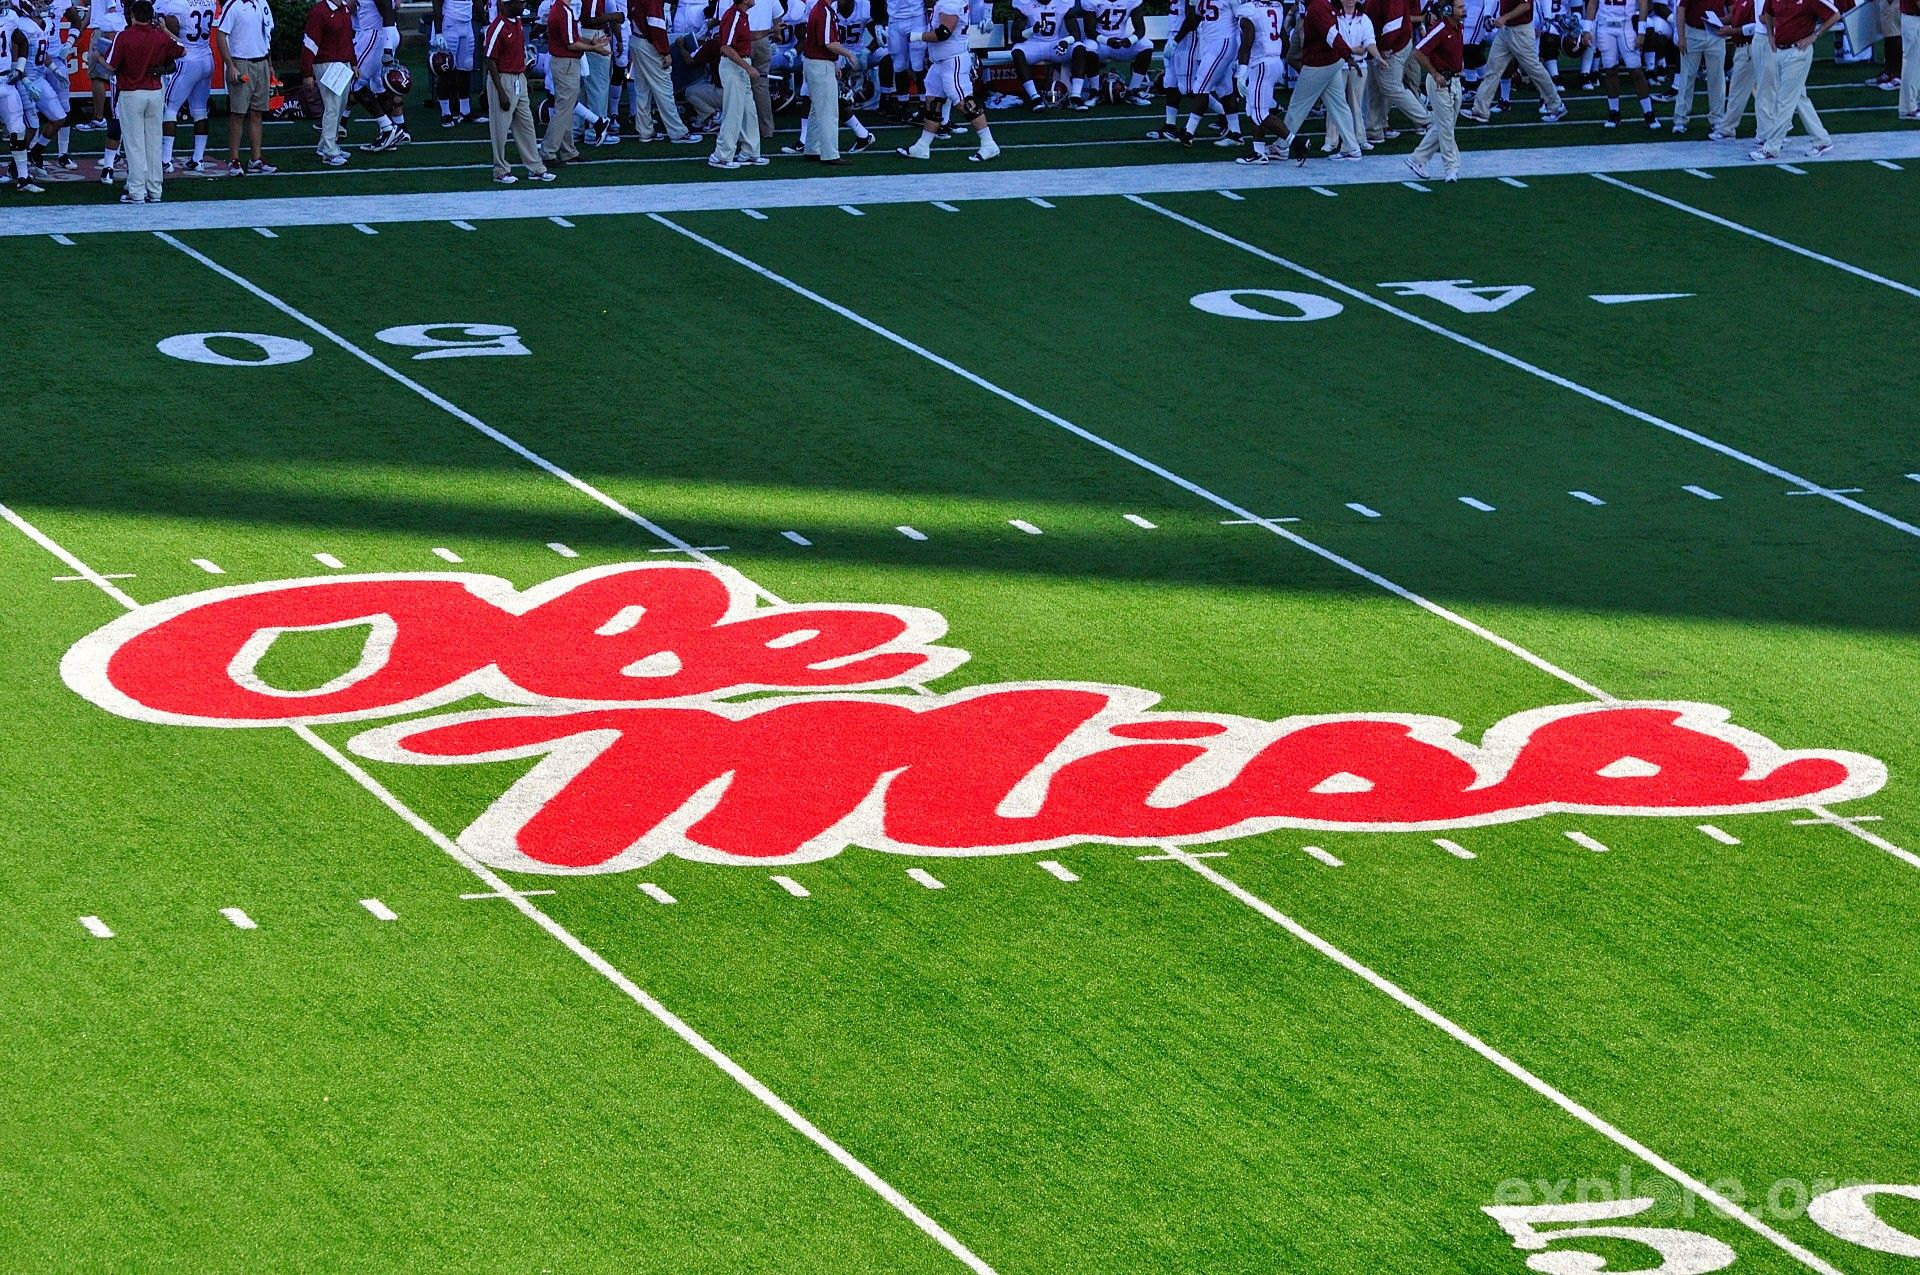 Ole Miss Wallpapers Browser Themes More For Rebels Fans Ole Miss Ole Miss Rebels Ole Miss Football